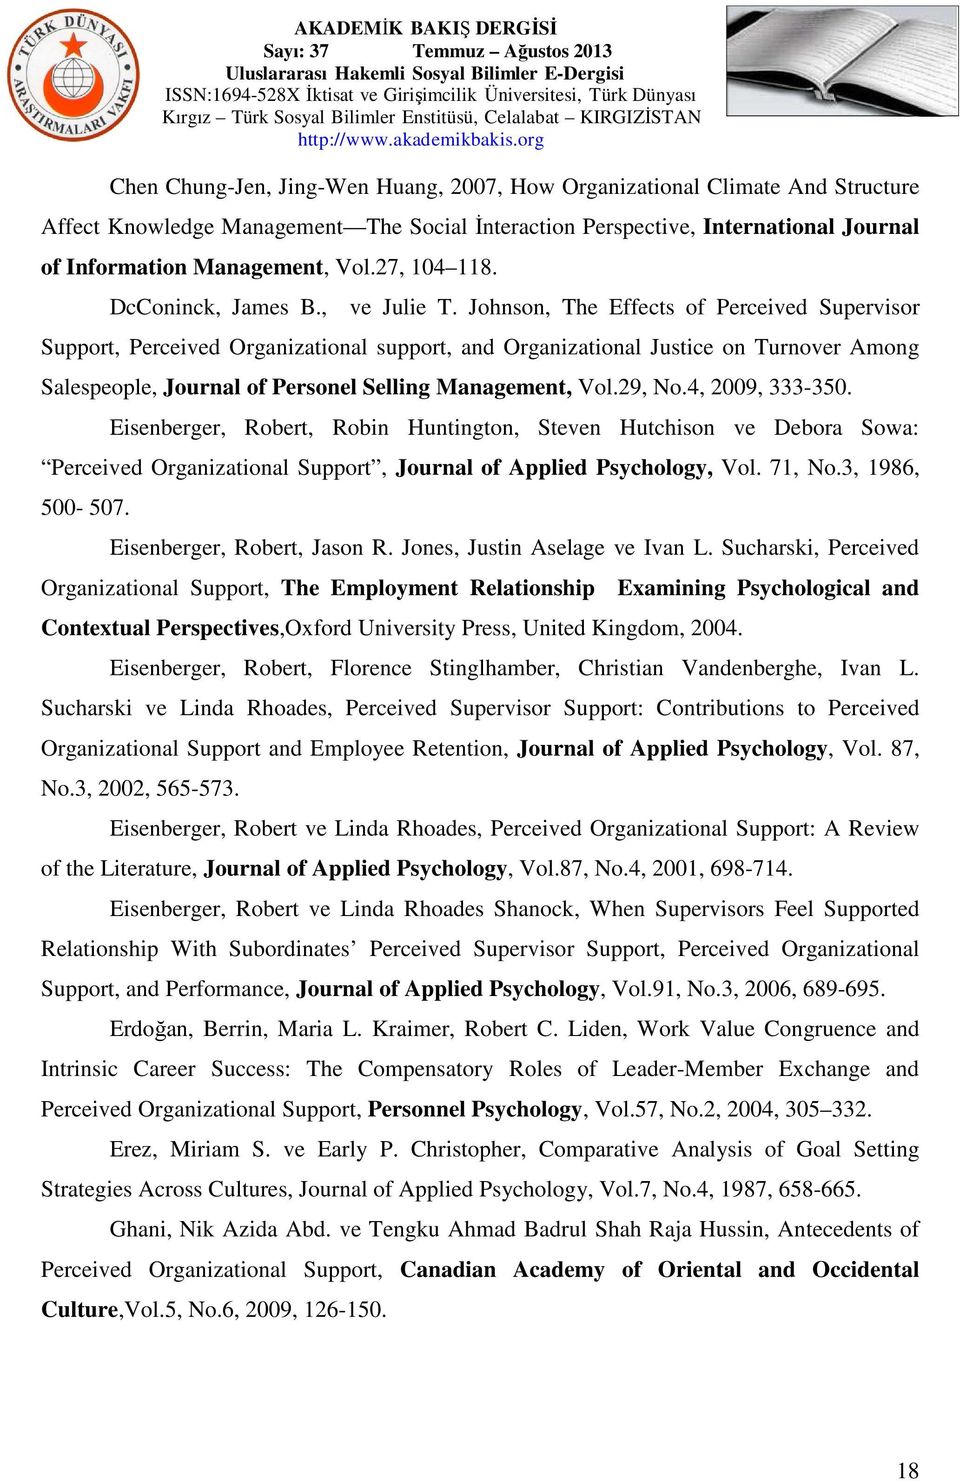 Johnson, The Effects of Perceived Supervisor Support, Perceived Organizational support, and Organizational Justice on Turnover Among Salespeople, Journal of Personel Selling Management, Vol.29, No.